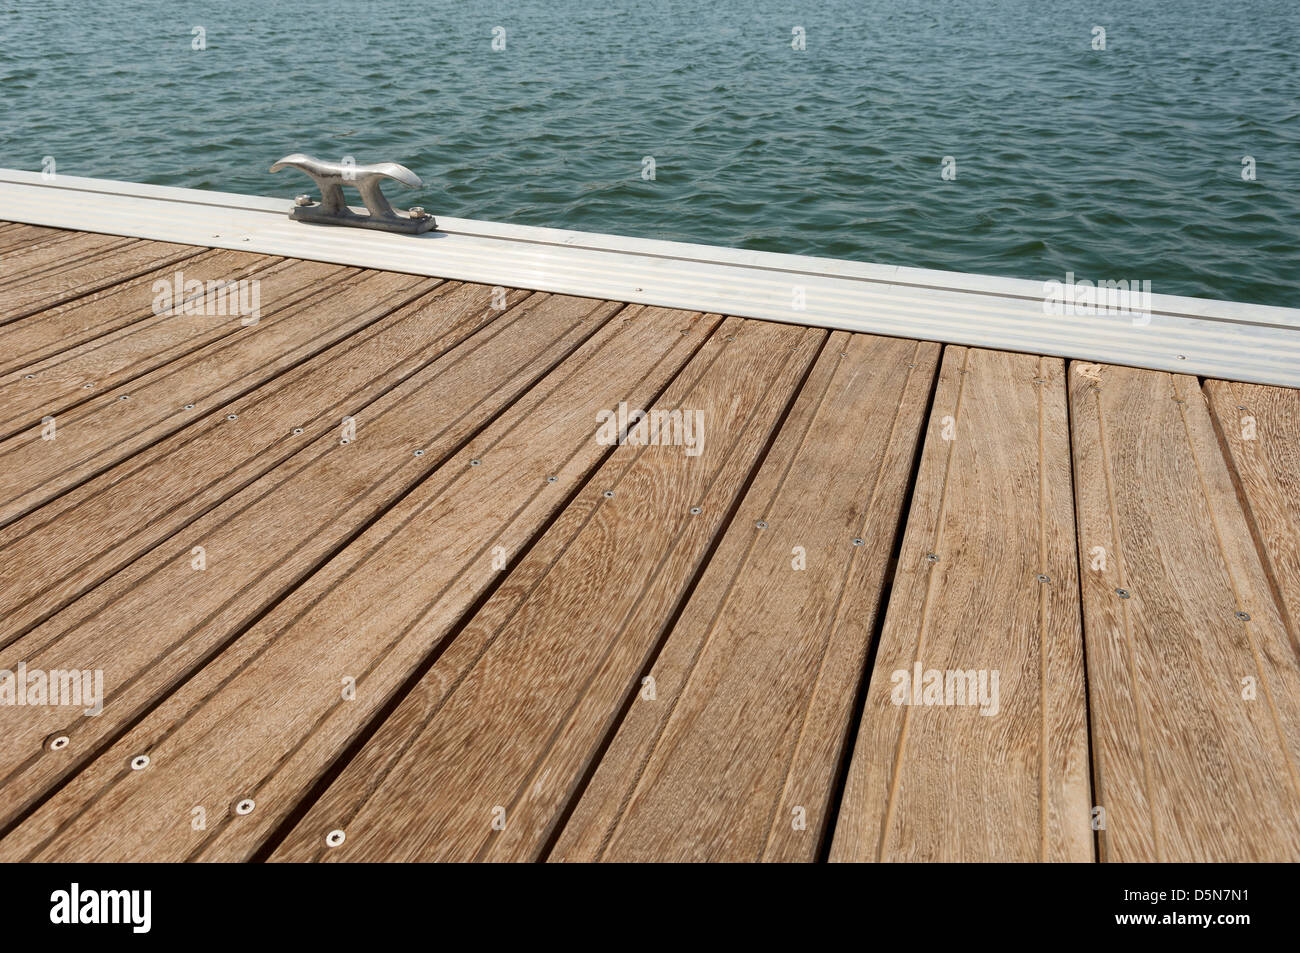 Detail of a wooden floating dock with mooring bitts - Stock Image